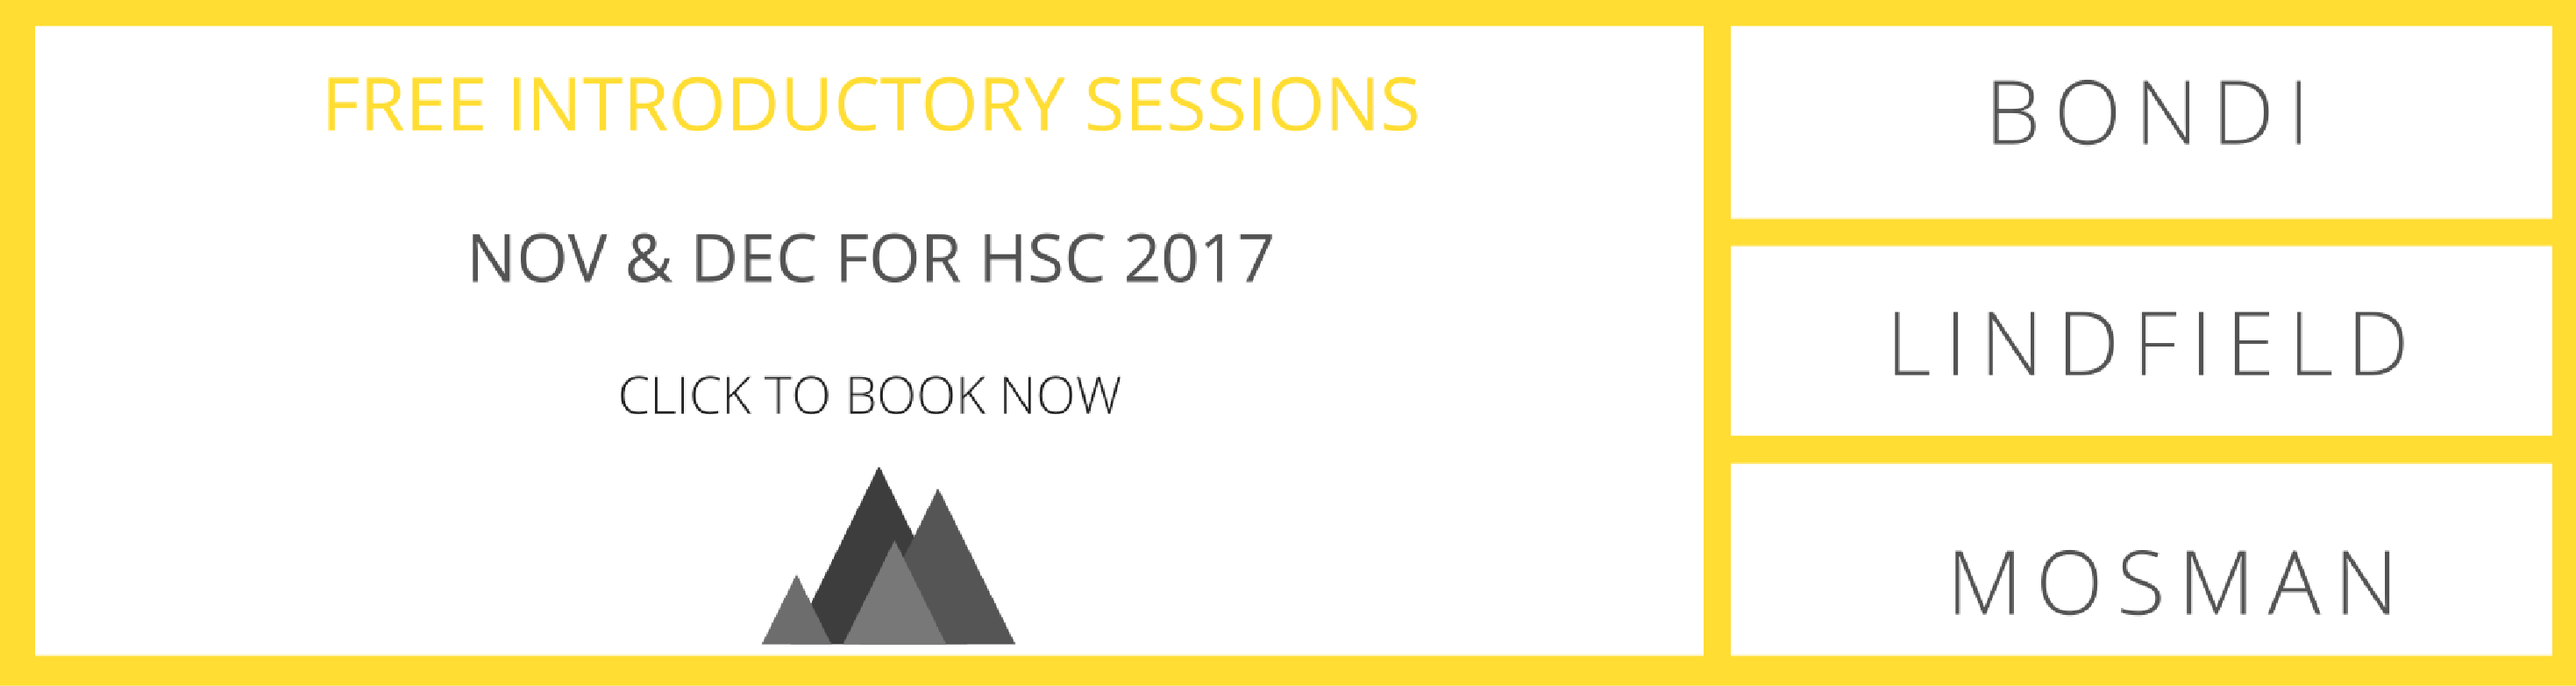 Free Introductory Session